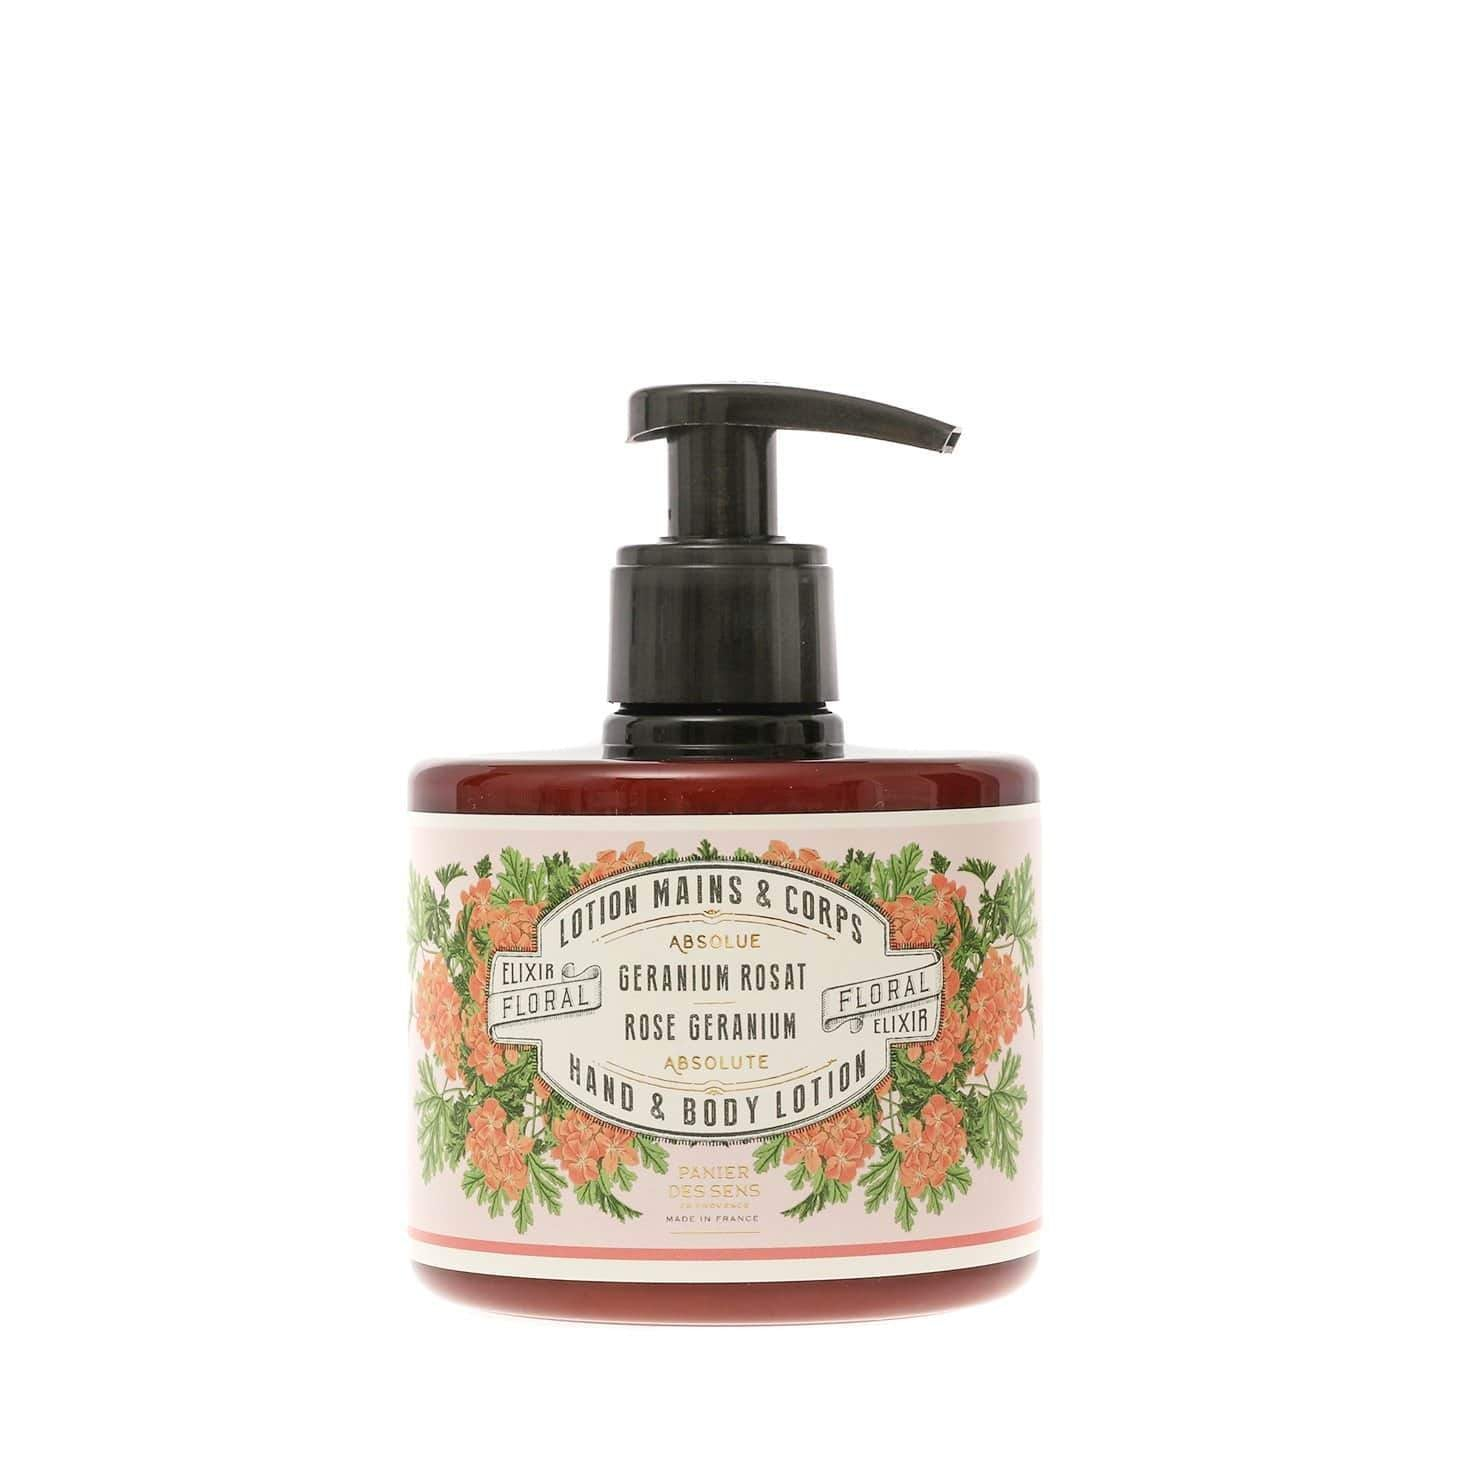 Rose Geranium Body Lotions